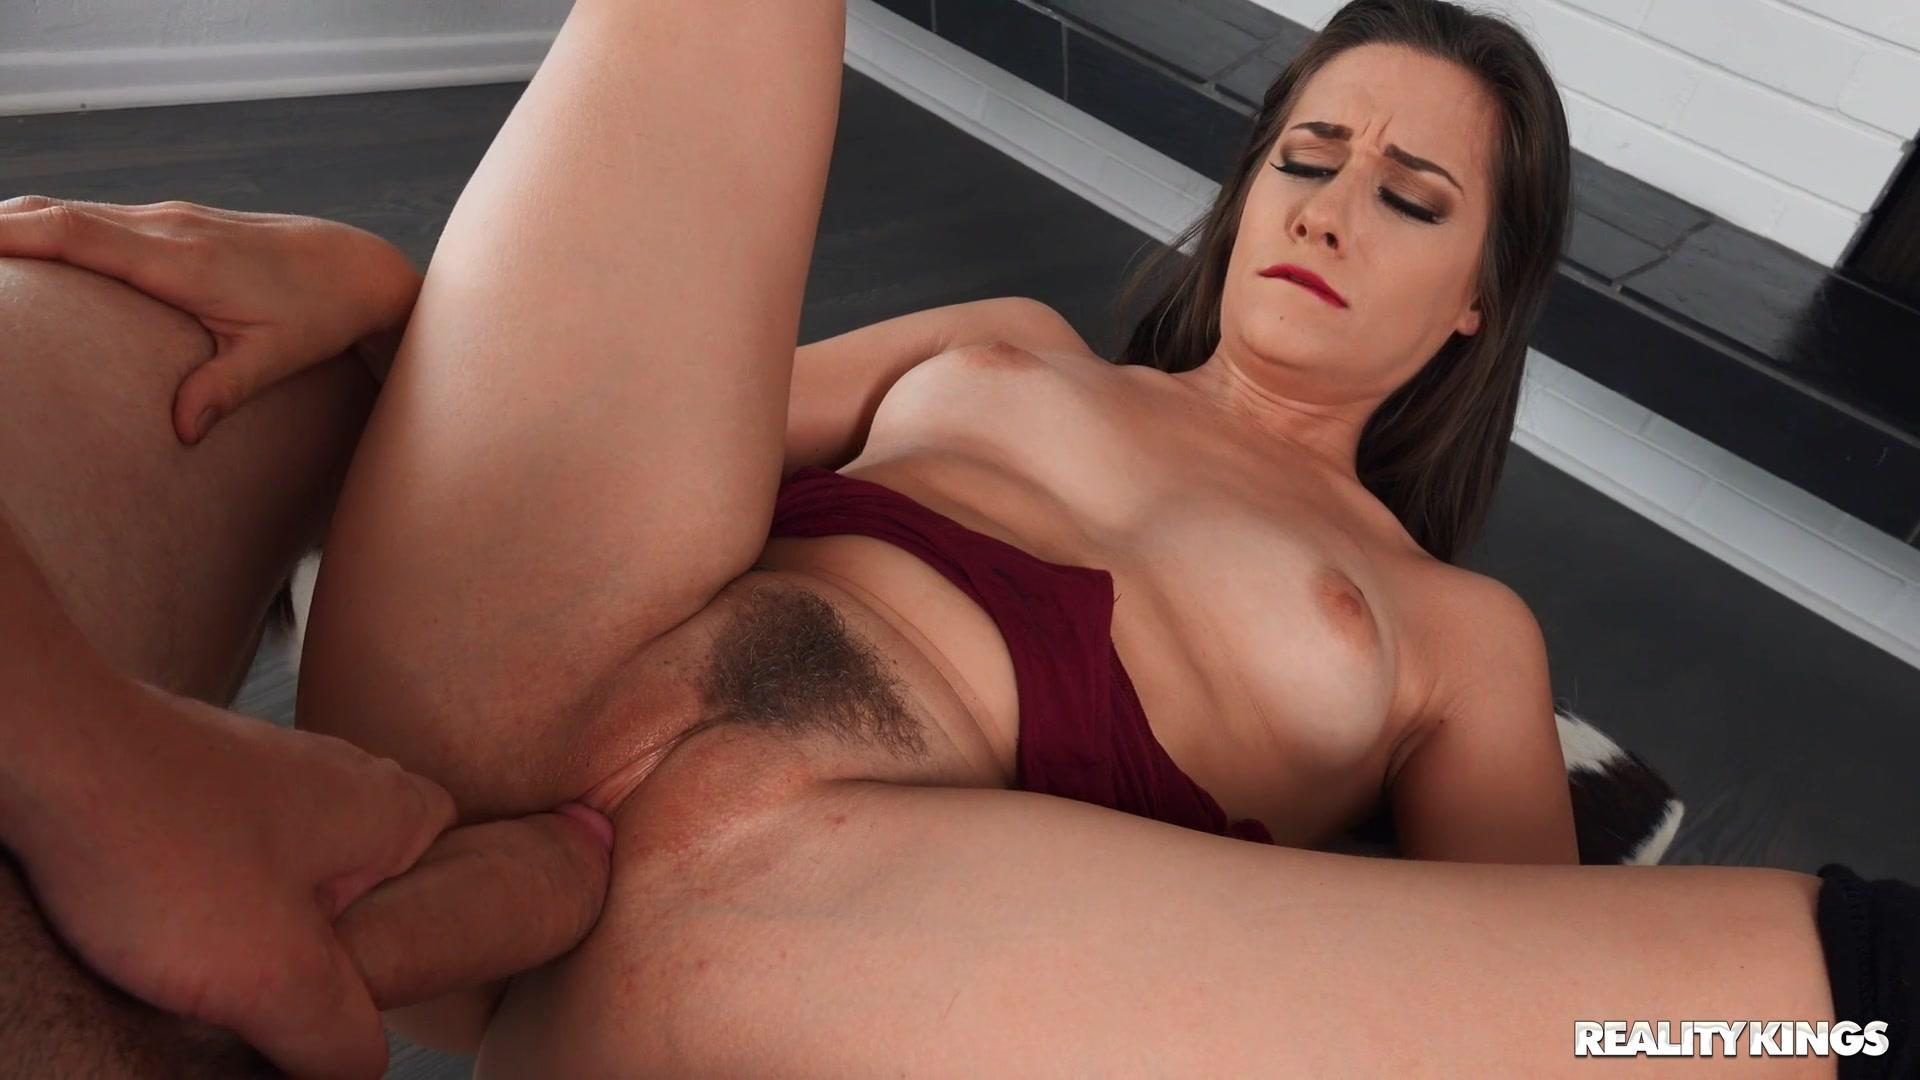 RK Prime – Cassidy Klein Checking Out Cassidy